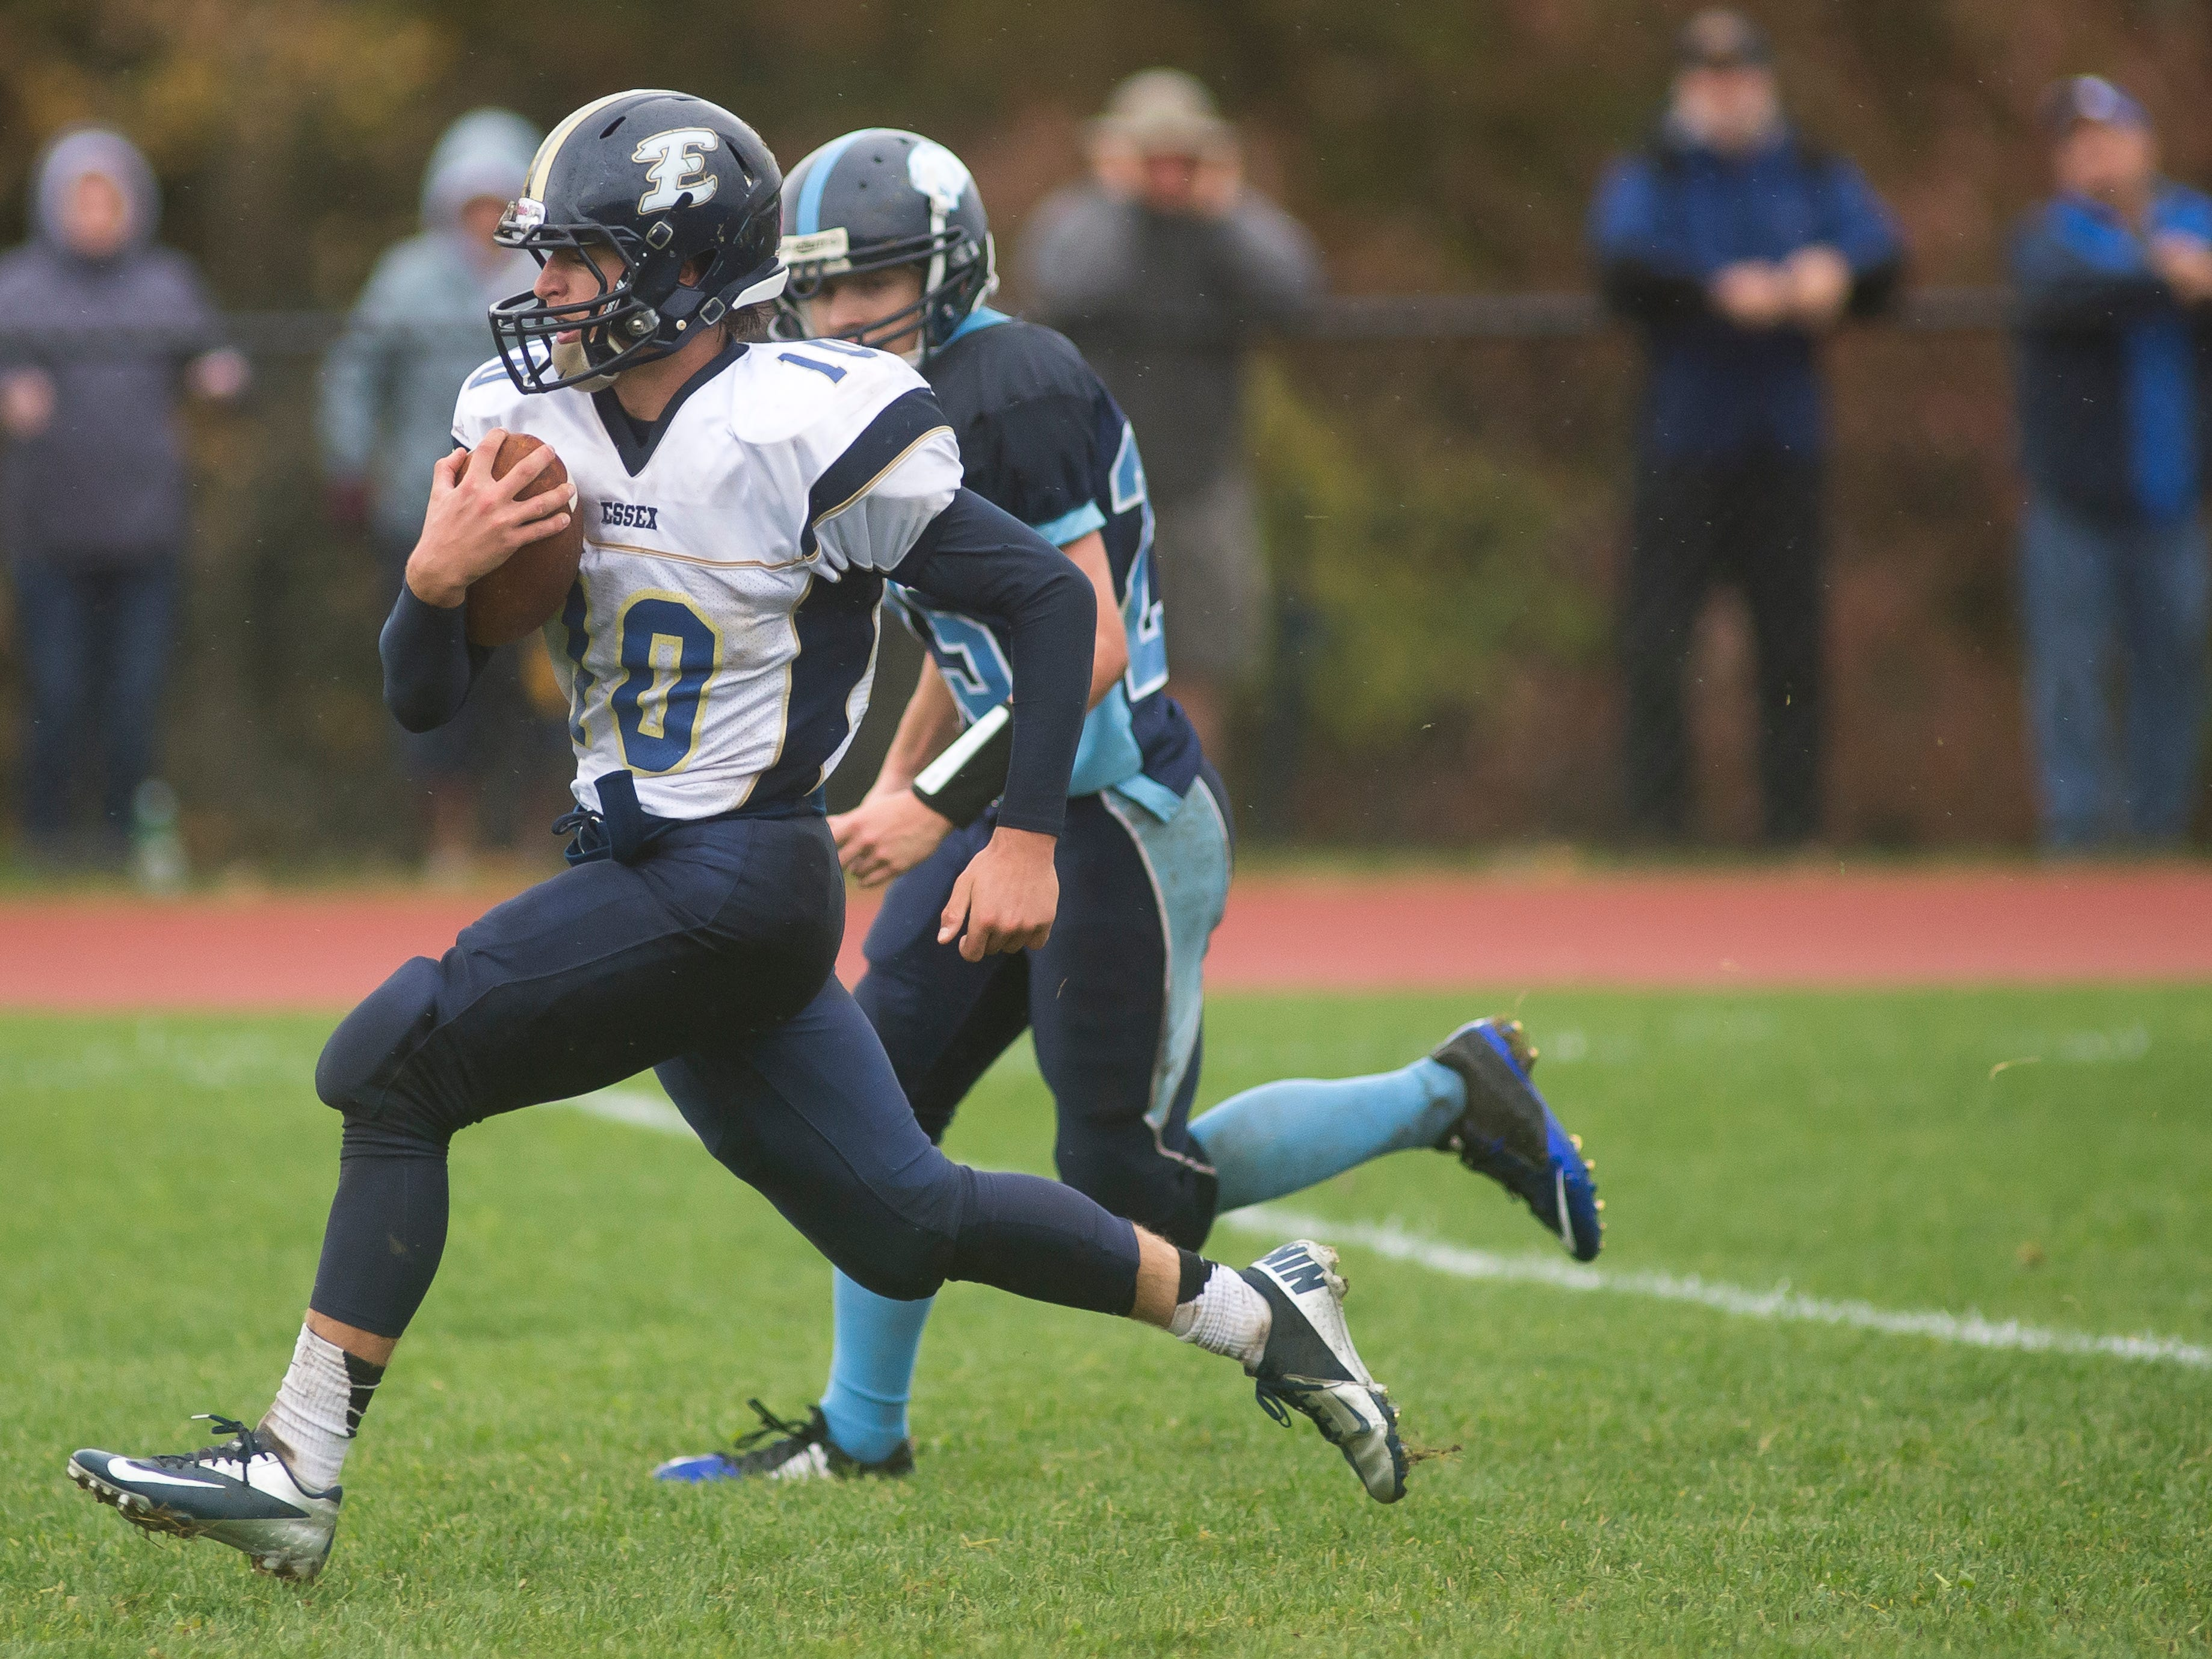 Essex High School's #10 Brendan Gleason turns on the speed into the end zone for the touchdown Saturday at MMU.